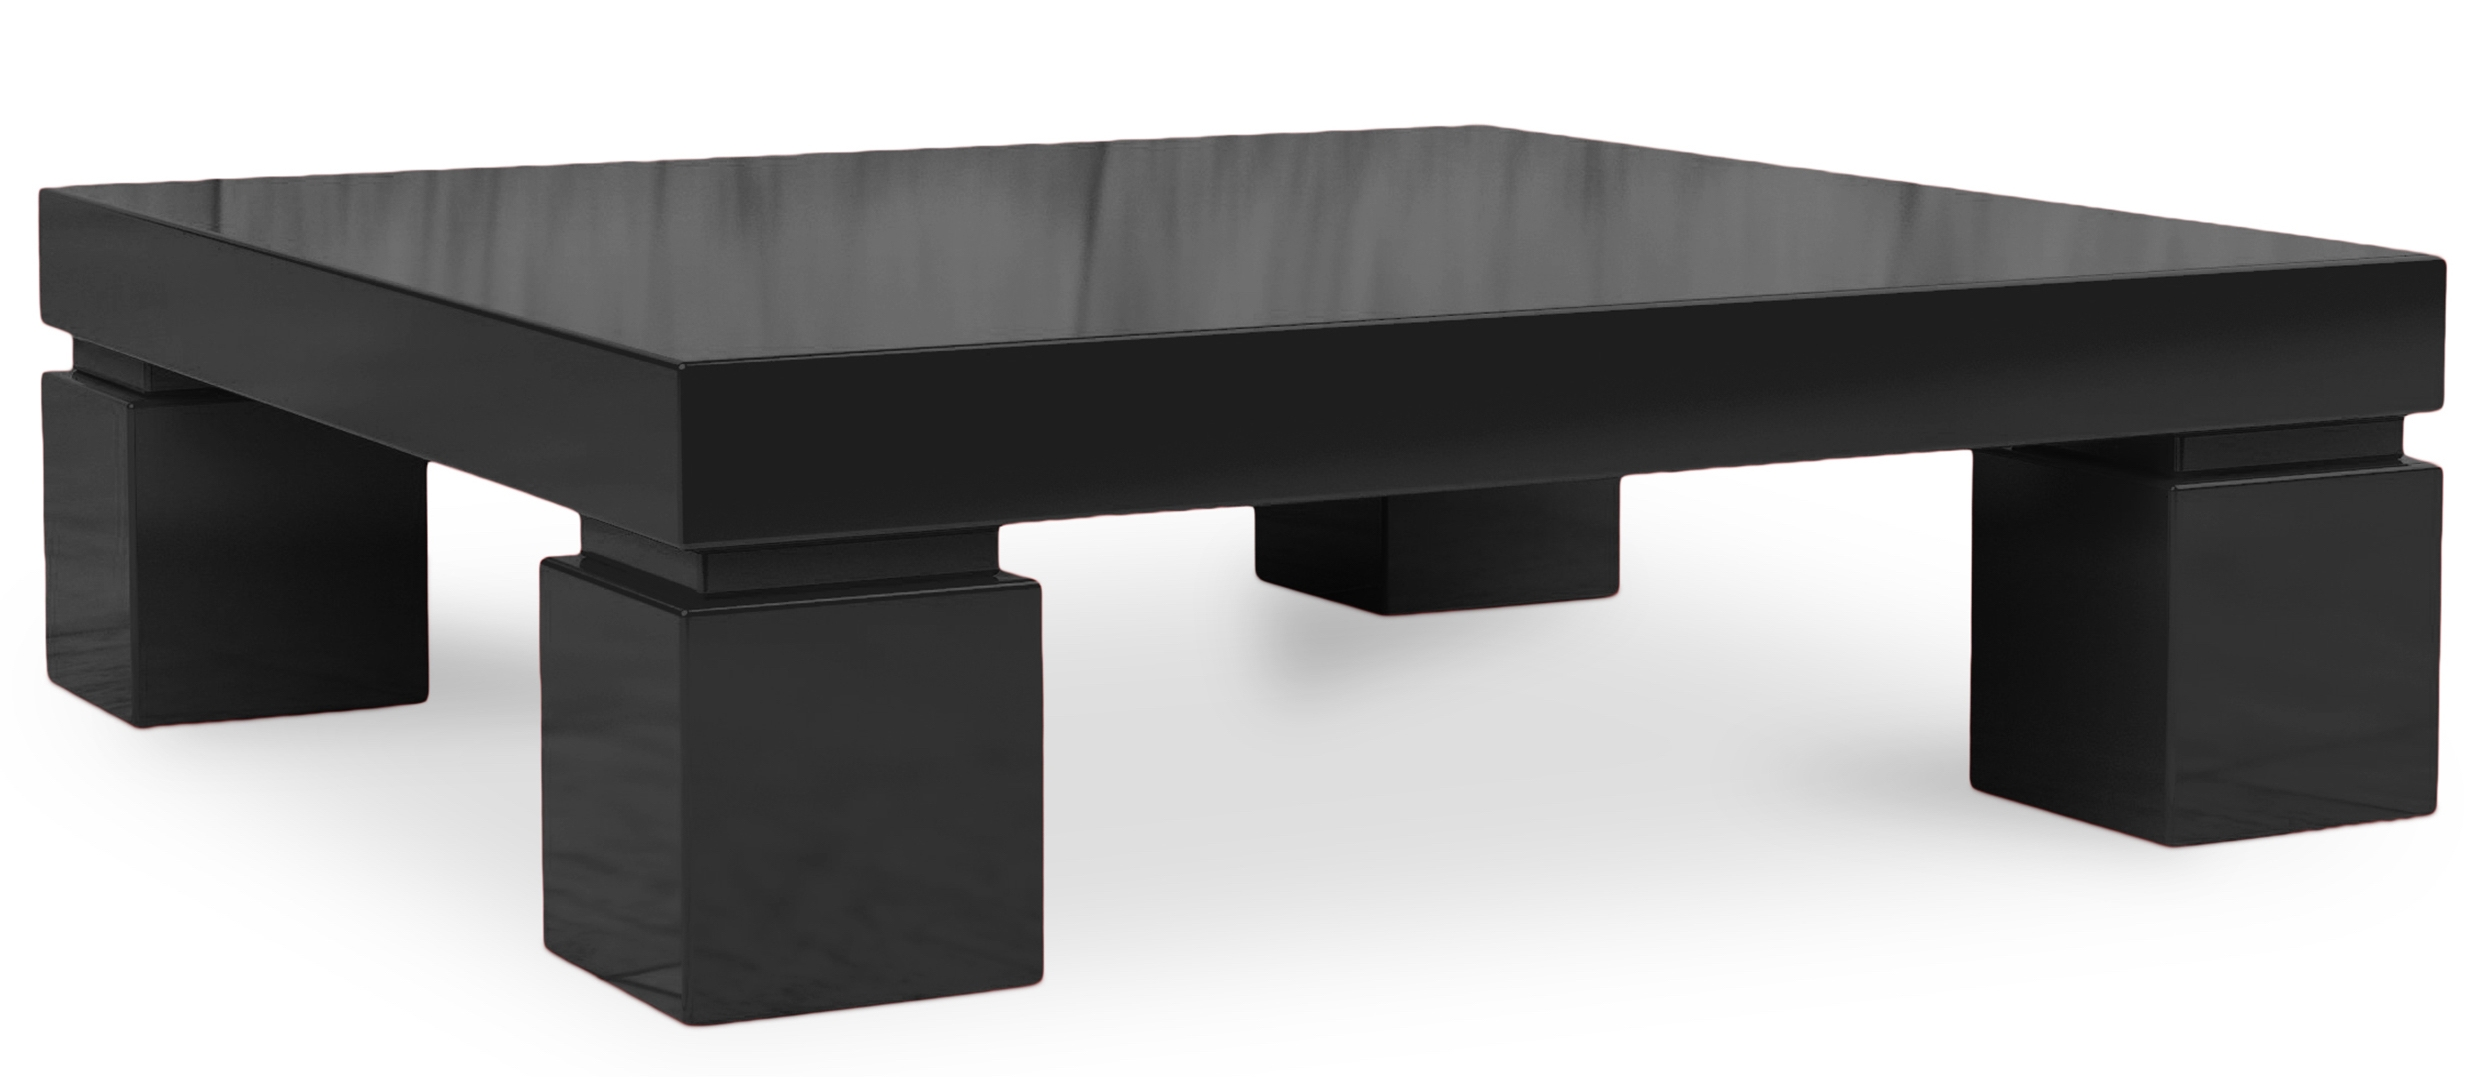 Table basse carr e laqu e noir kare - Table basse carree noire ...